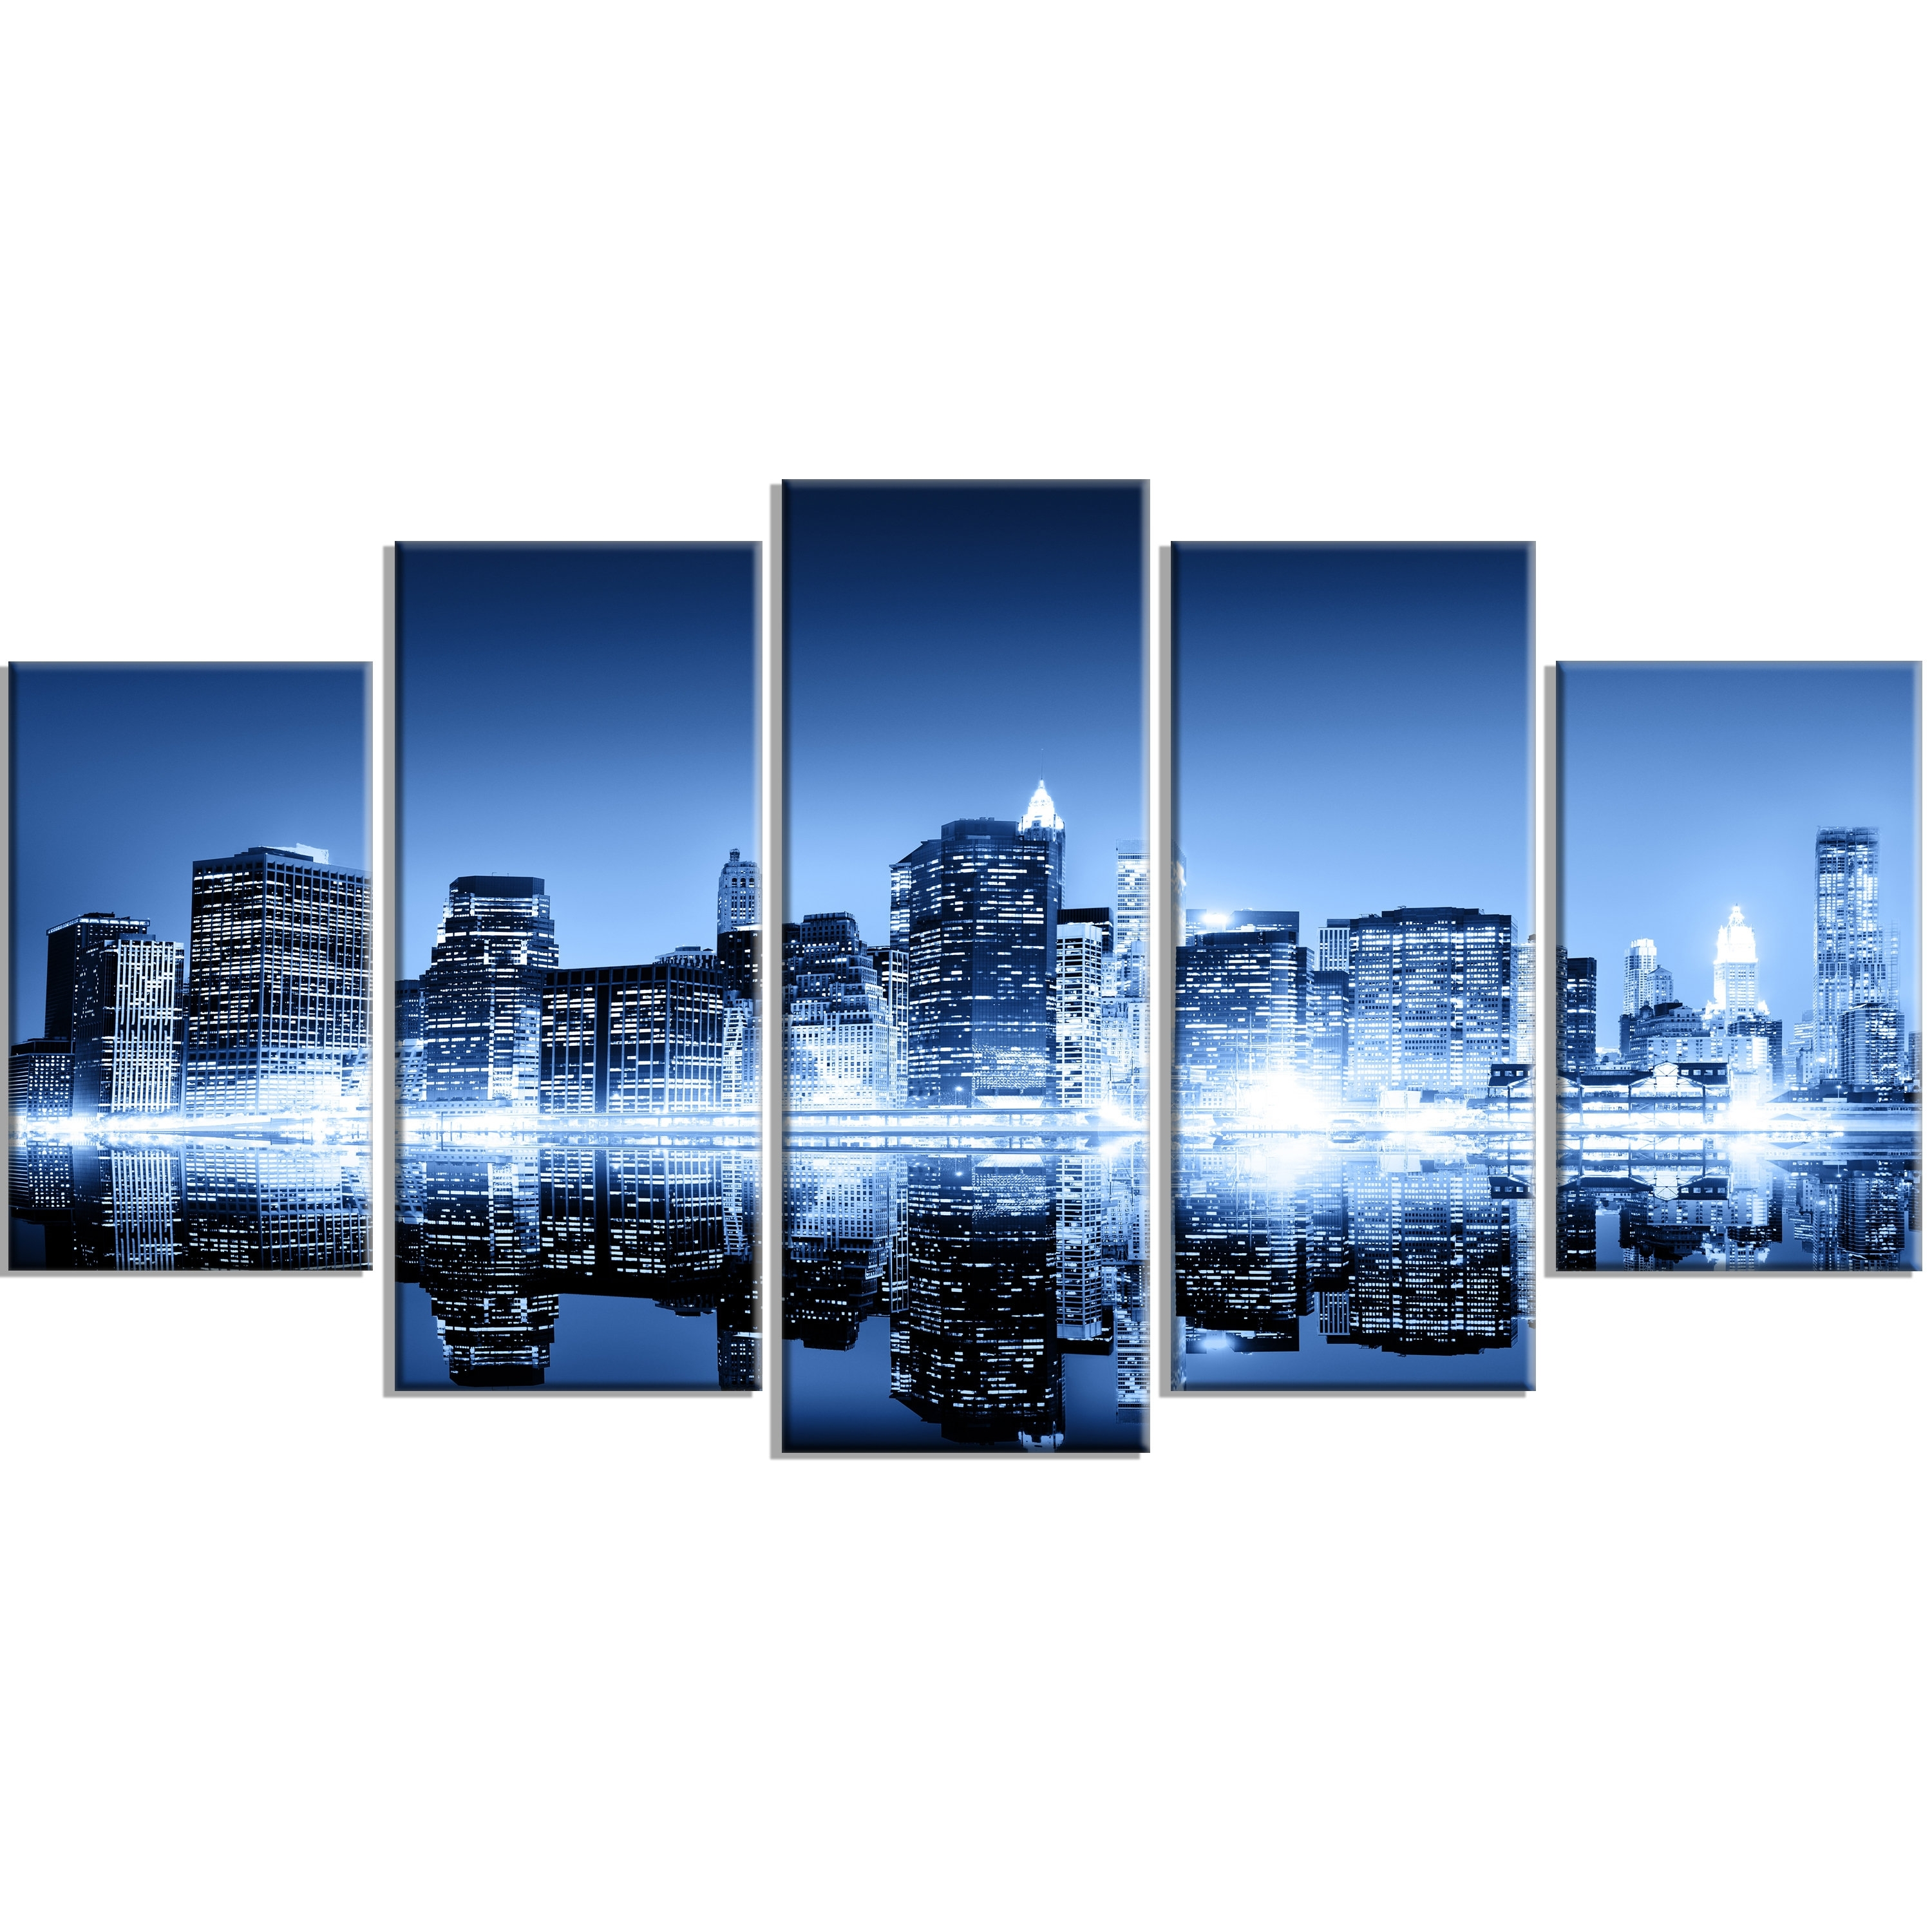 Designart 'night New York City Mirrored' 5 Piece Wall Art On Wrapped intended for New York City Wall Art (Image 8 of 20)